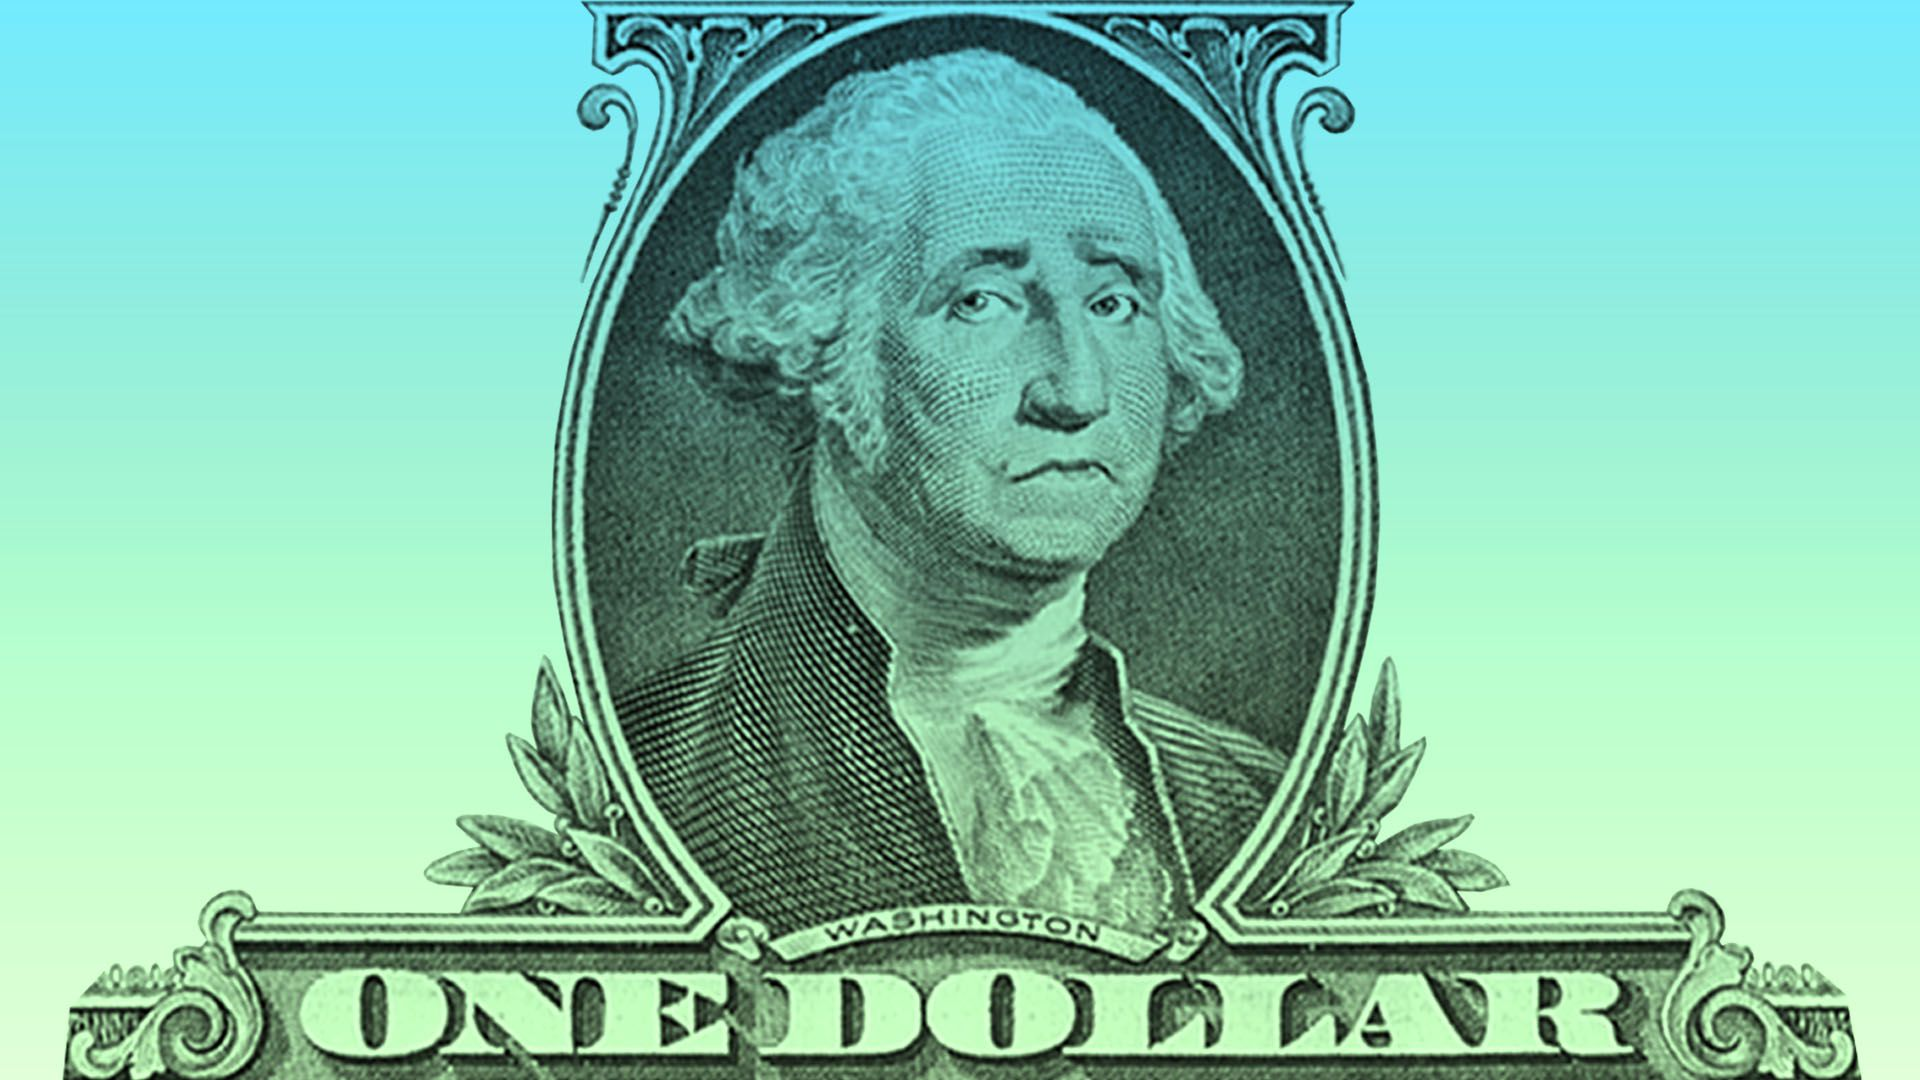 llustration of a sad George Washington on a dollar